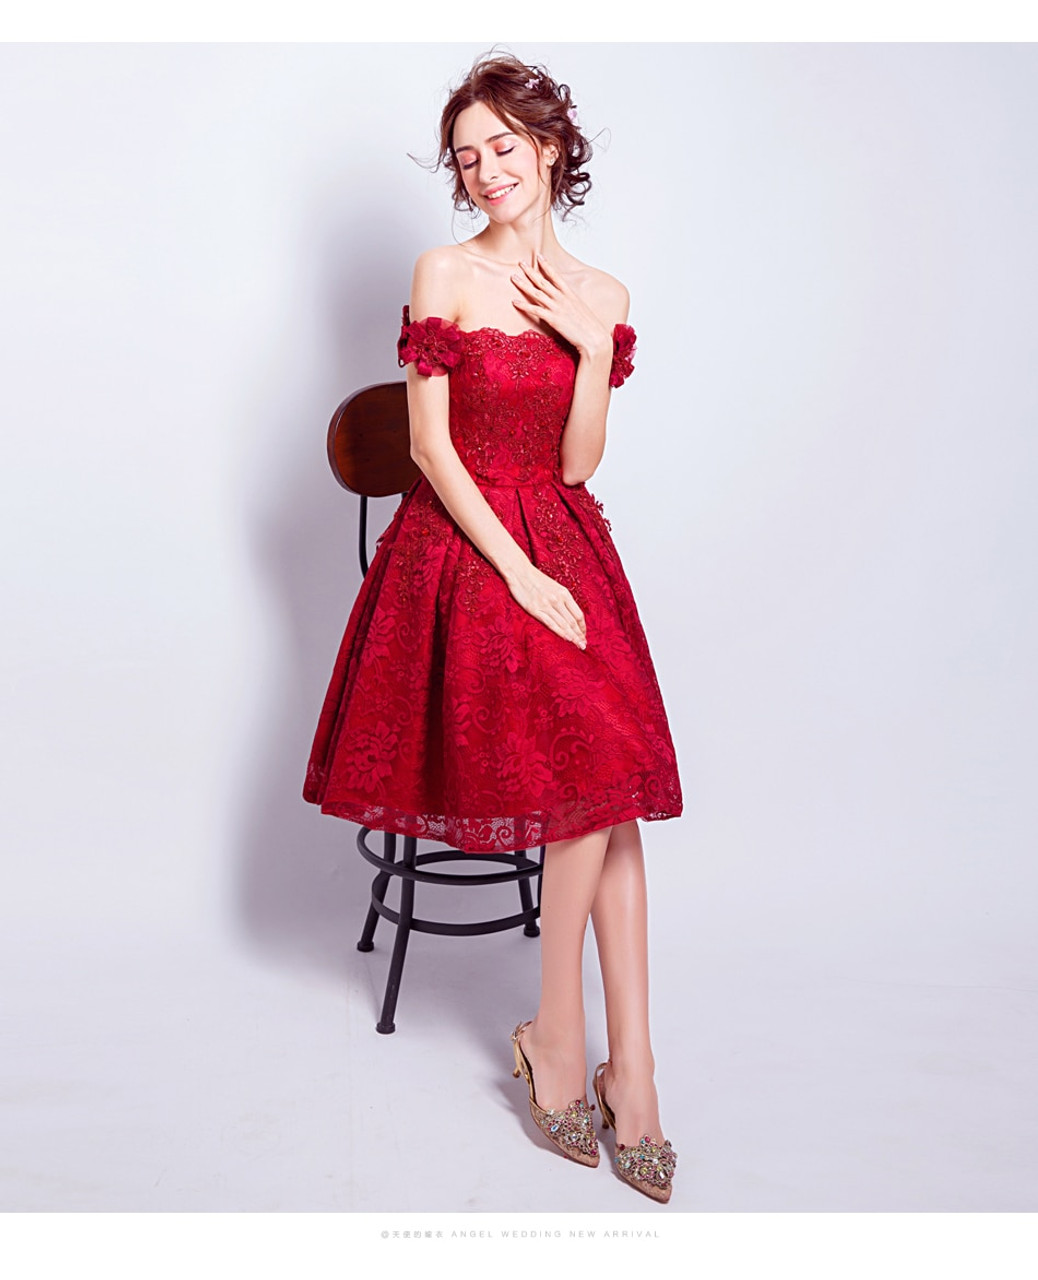 4256452dc34e7 ... SSYFashion New Red Lace Flower Short Cocktail Dress The Bride Married  Banquet Embroidery Boat Neck Knee ...